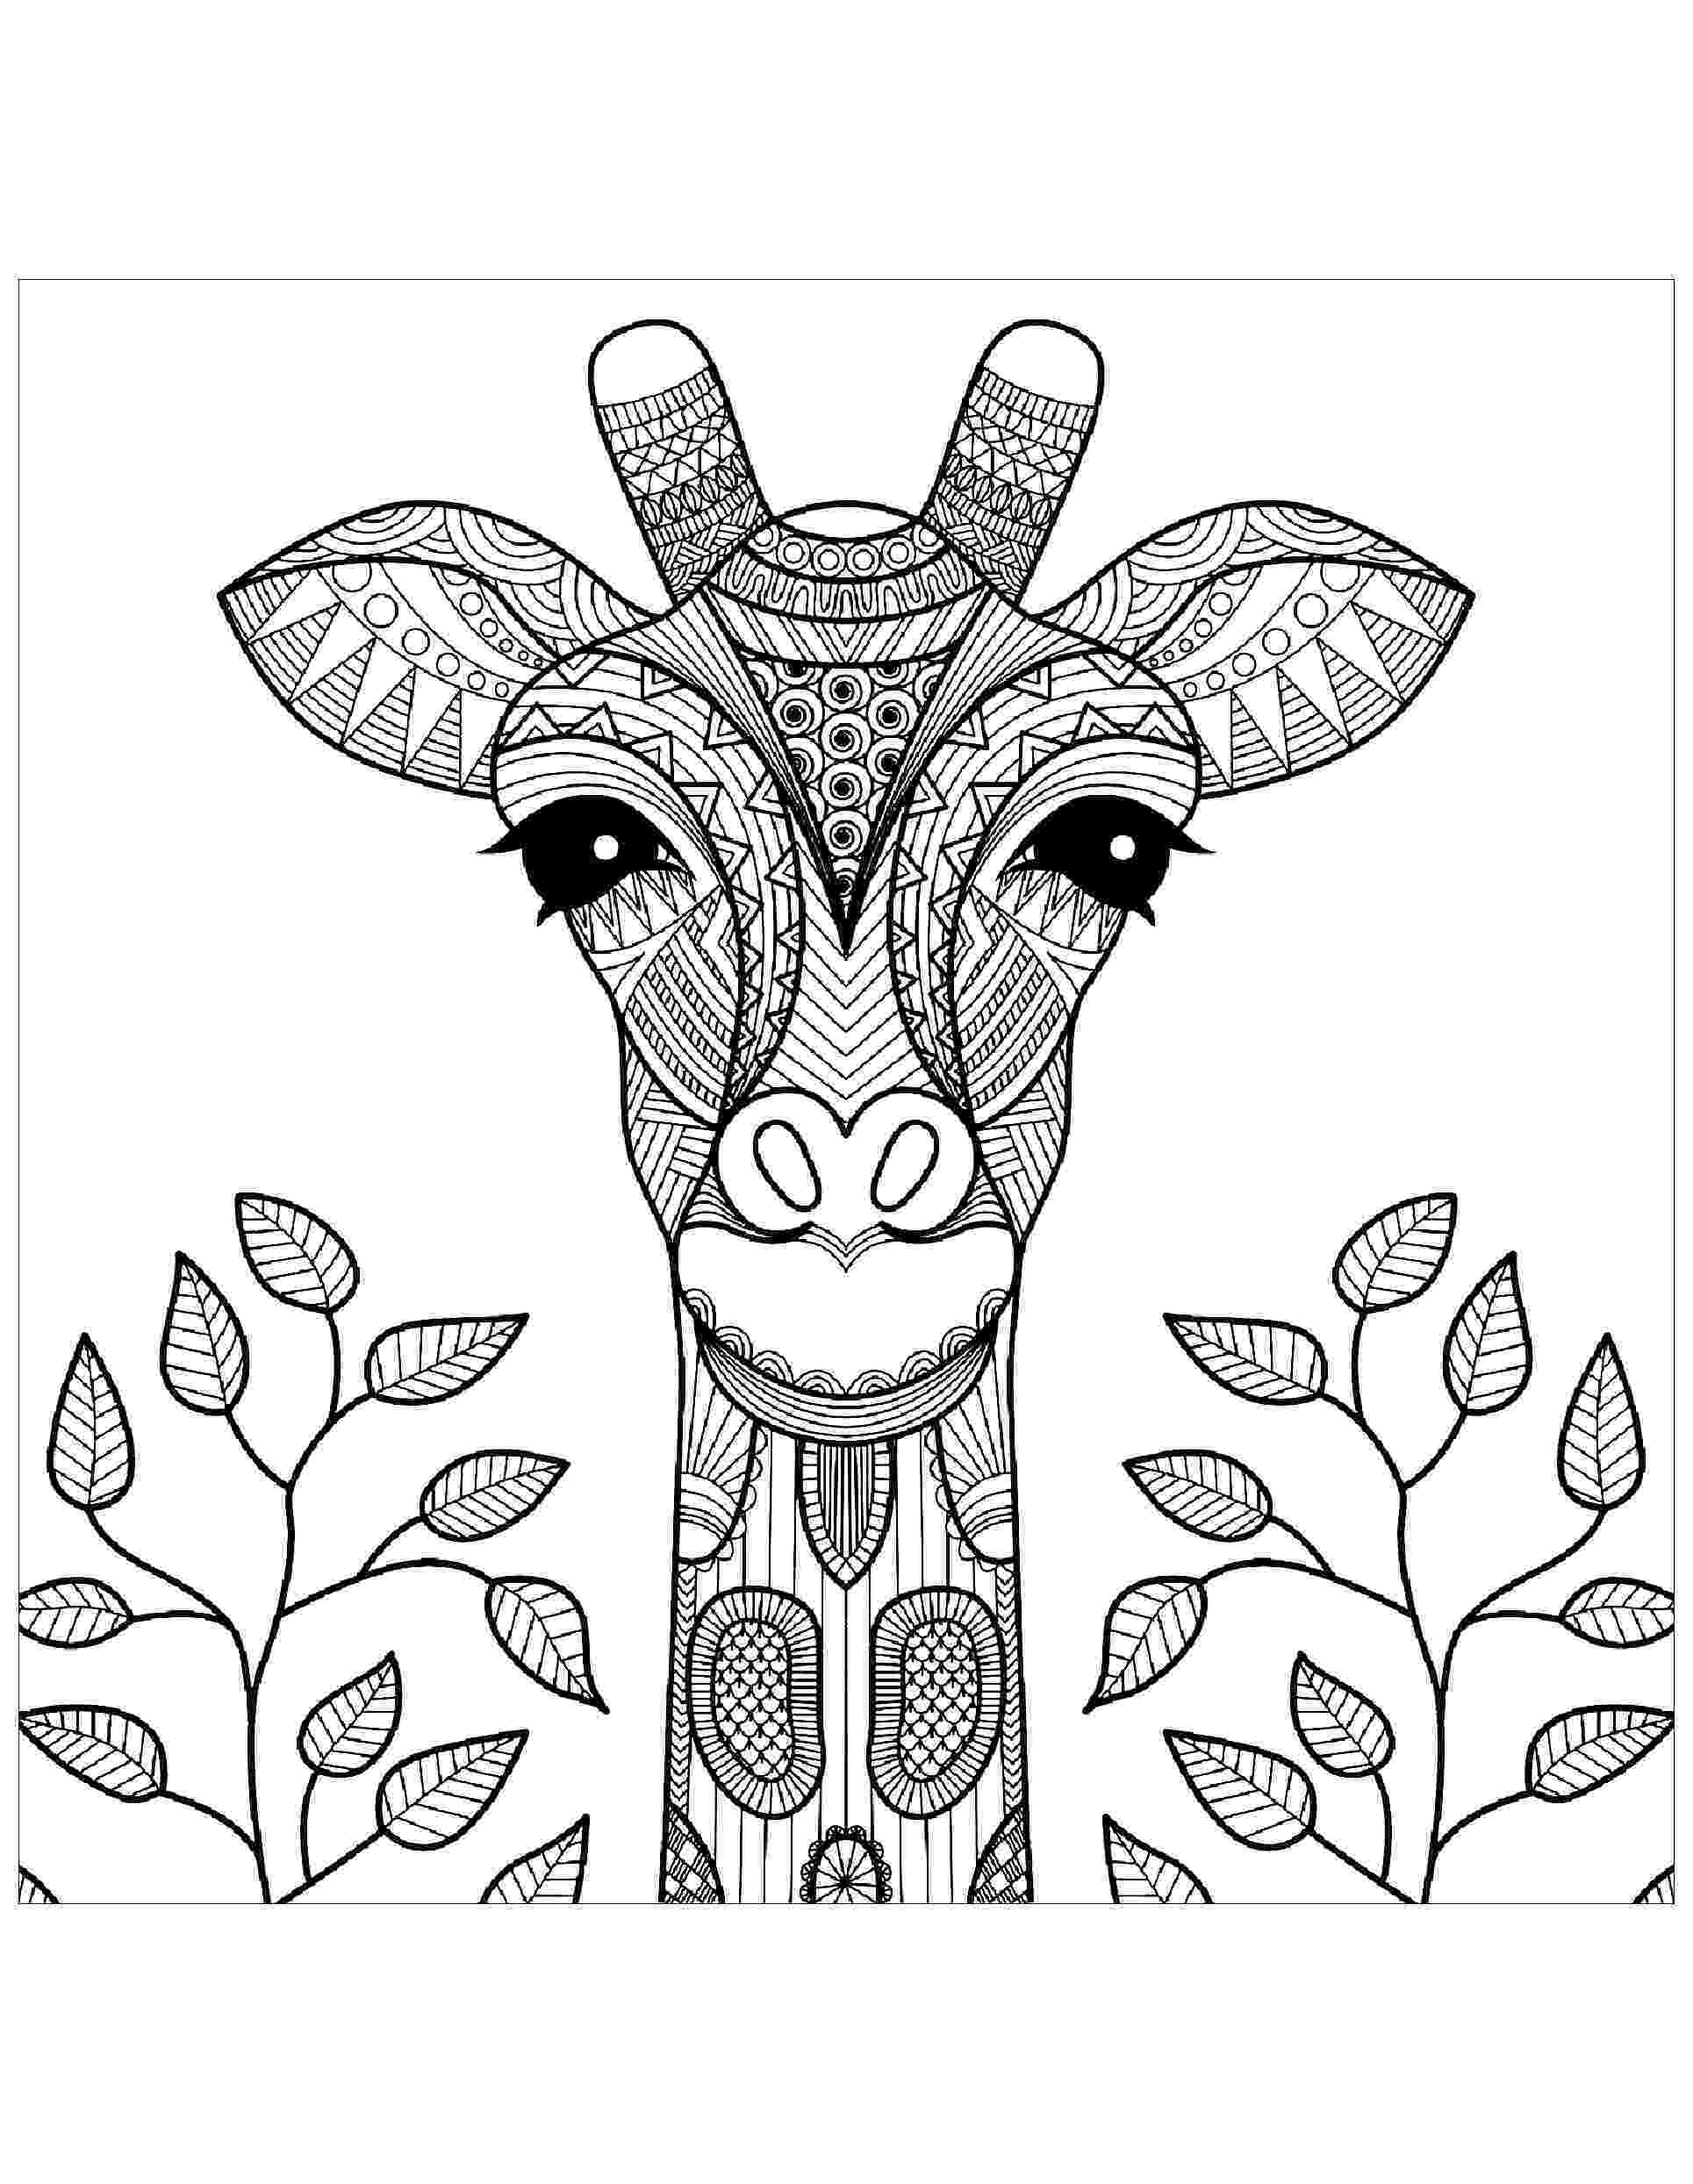 colouring pages for giraffe coloring pages for kids giraffe coloring pages for kids for colouring pages giraffe